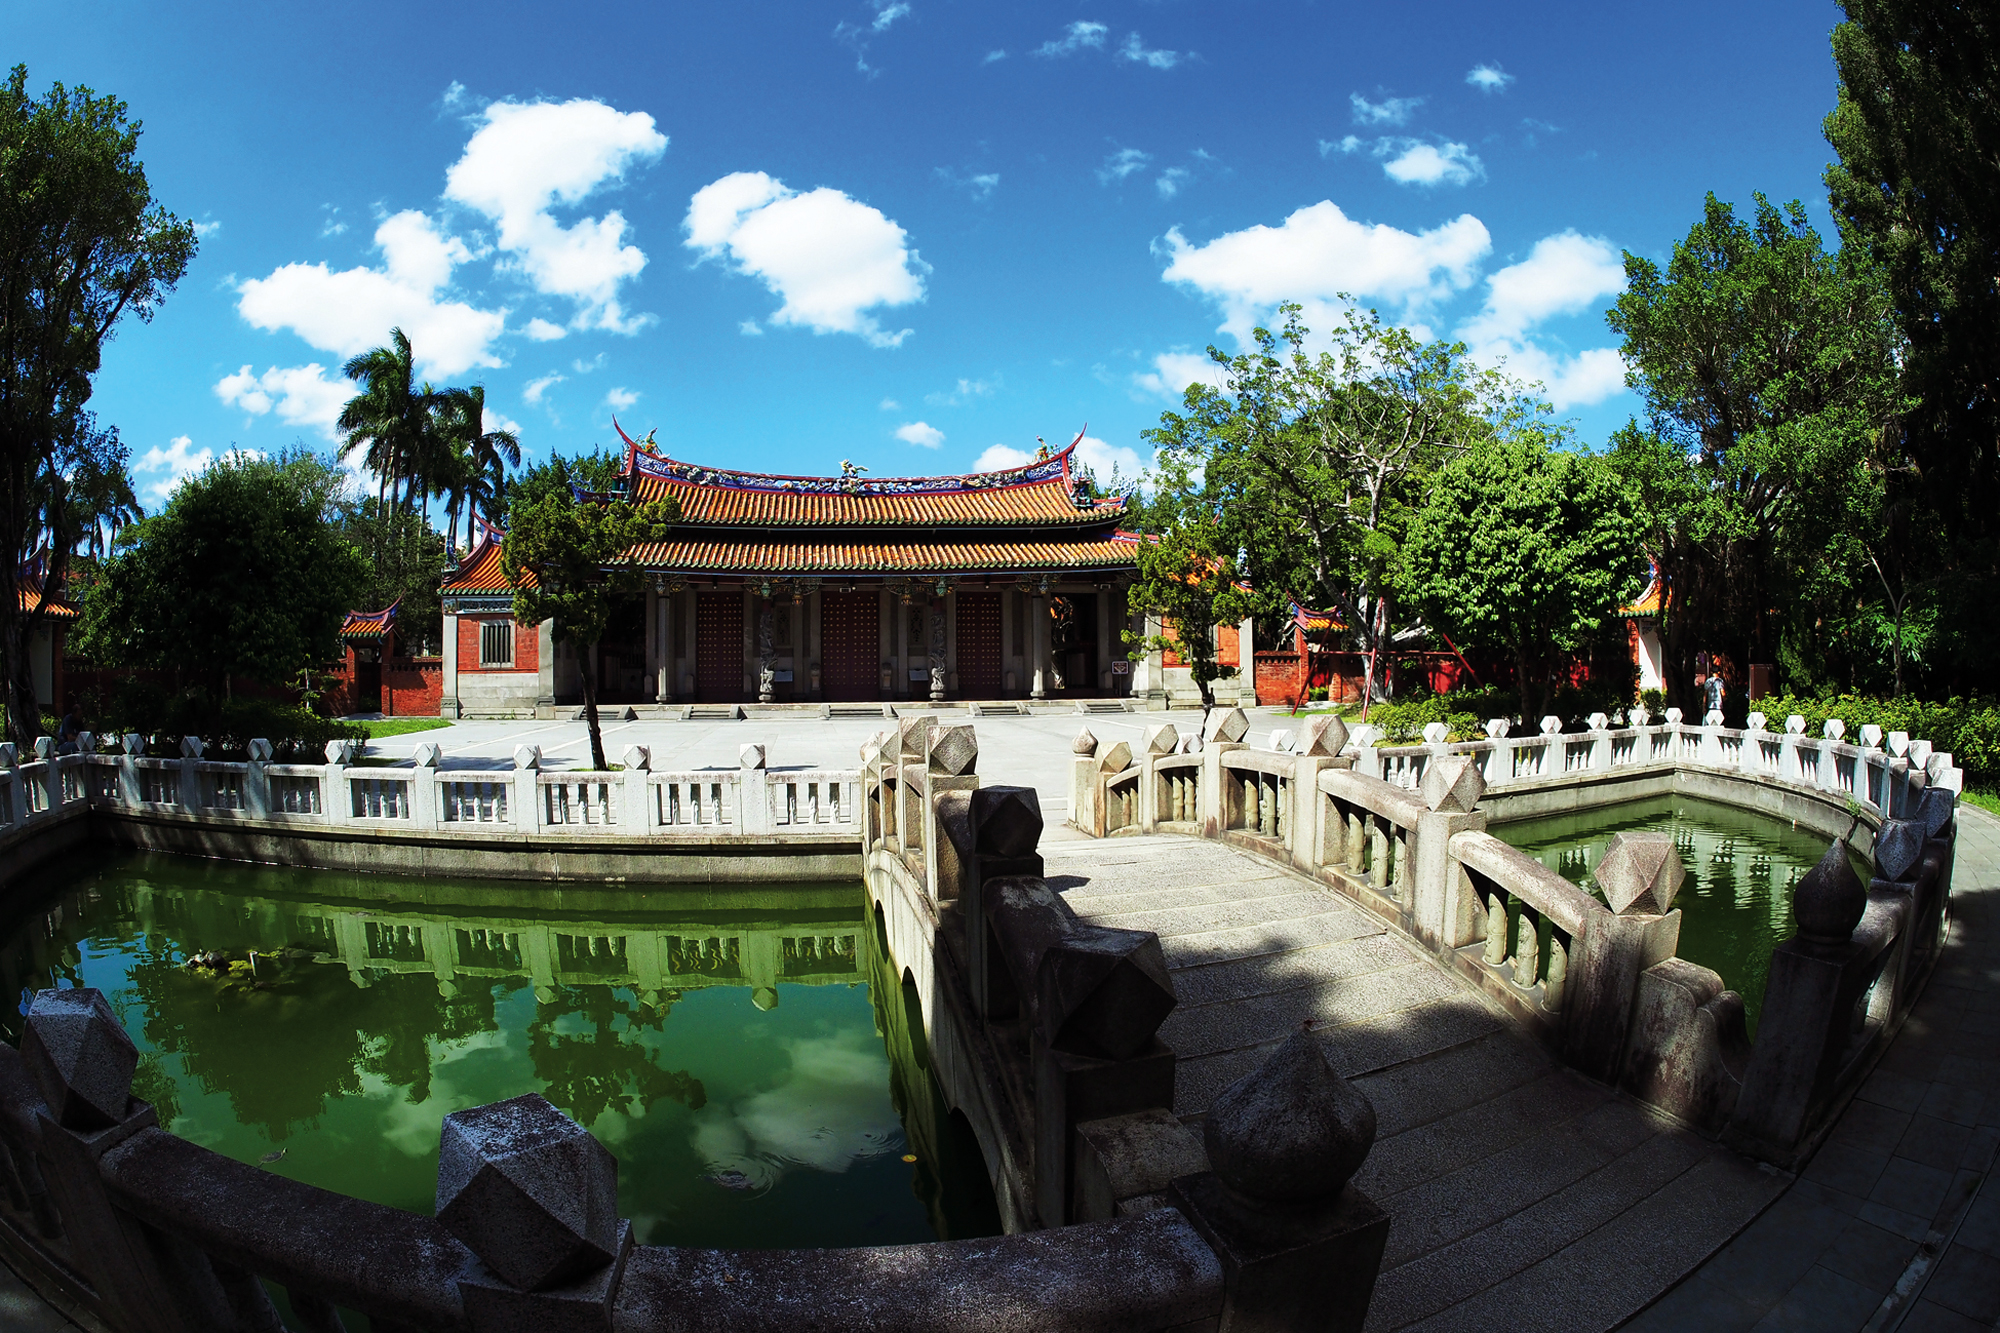 The pool in front of the Taipei Confucius Temple's Lingxing Gate serves to regulate temperature and provide auspicious fengshui, as well as providing a ready source of water for fighting fires. The arched bridge is known as the Pan Bridge.